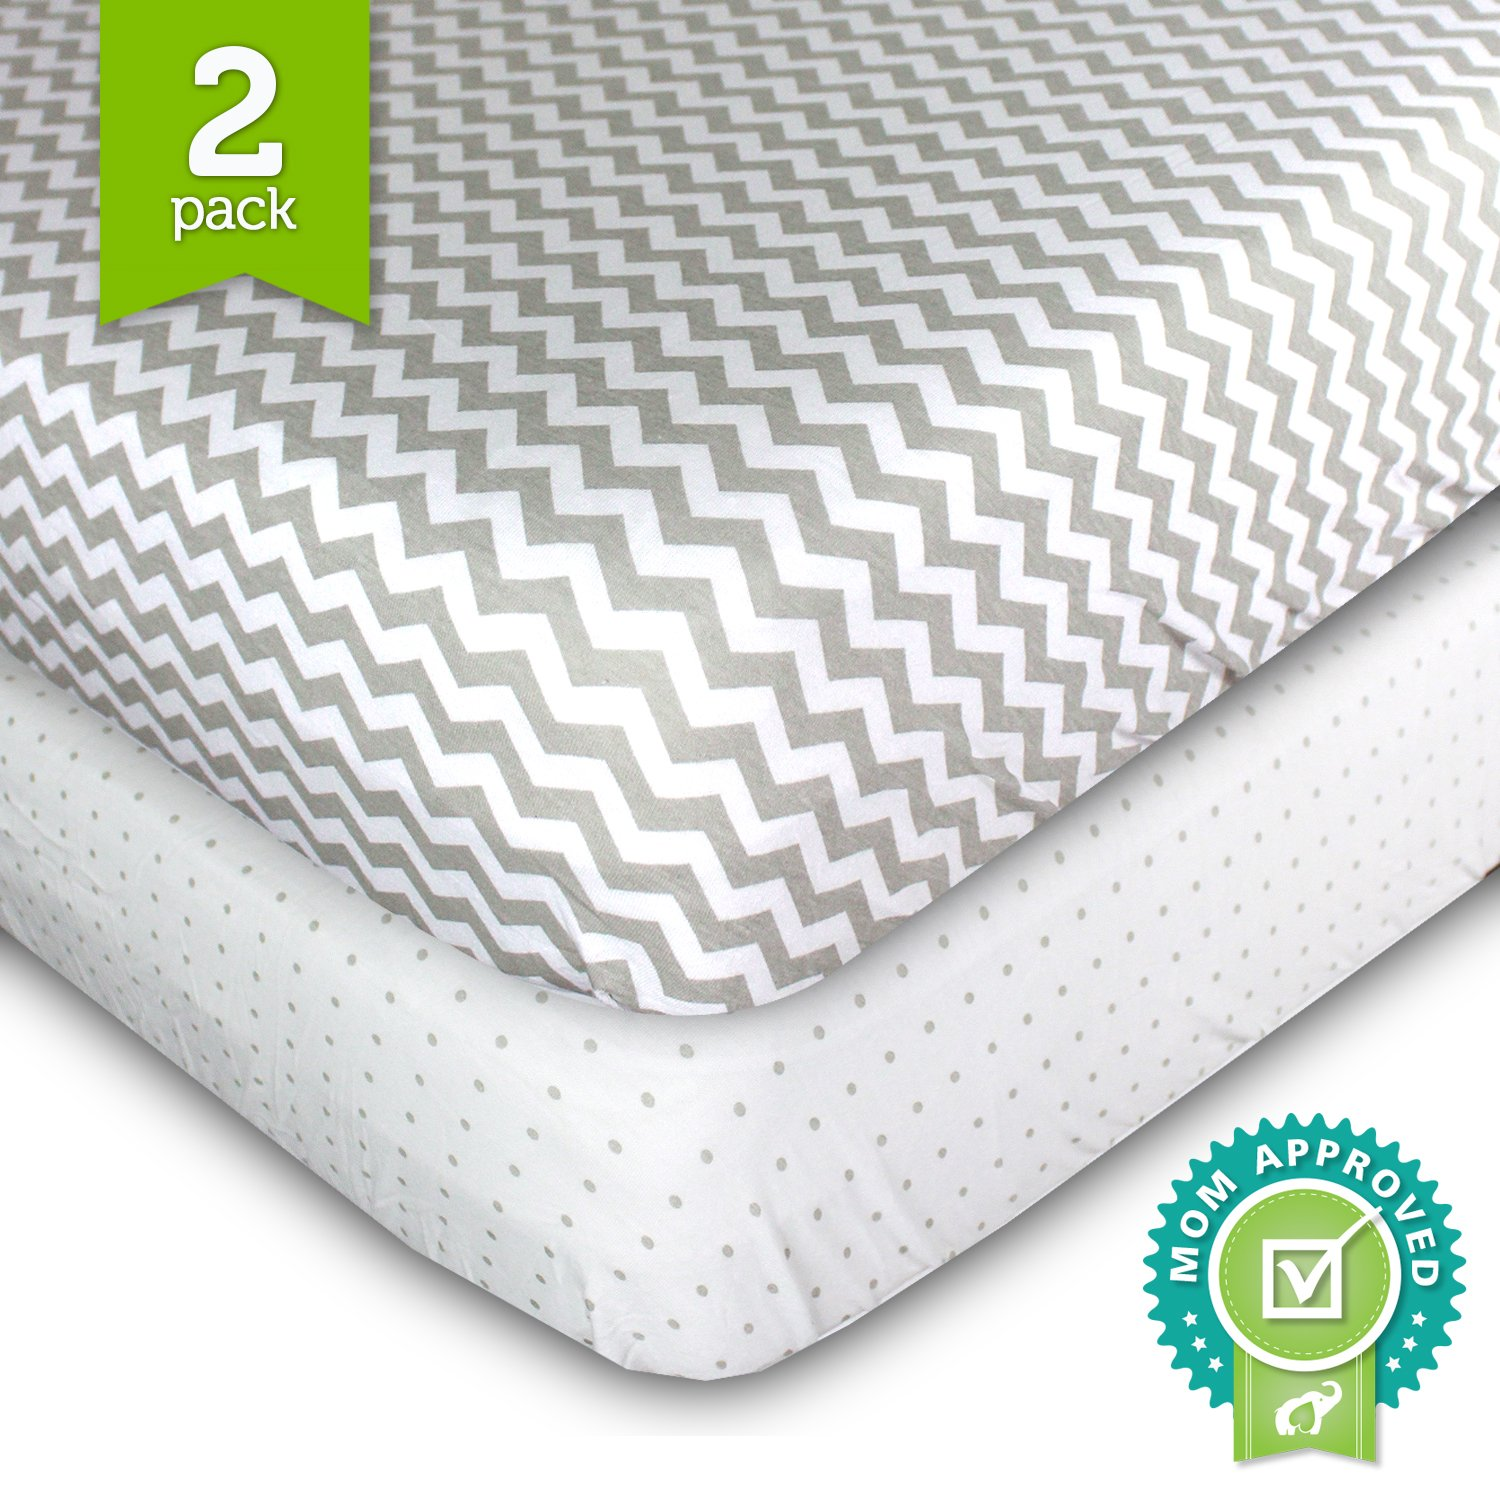 crib sheets toddler bedding fitted jersey cotton  2 pack  grey polka dot amazon     la baby full size metal holiday crib white   baby  rh   amazon